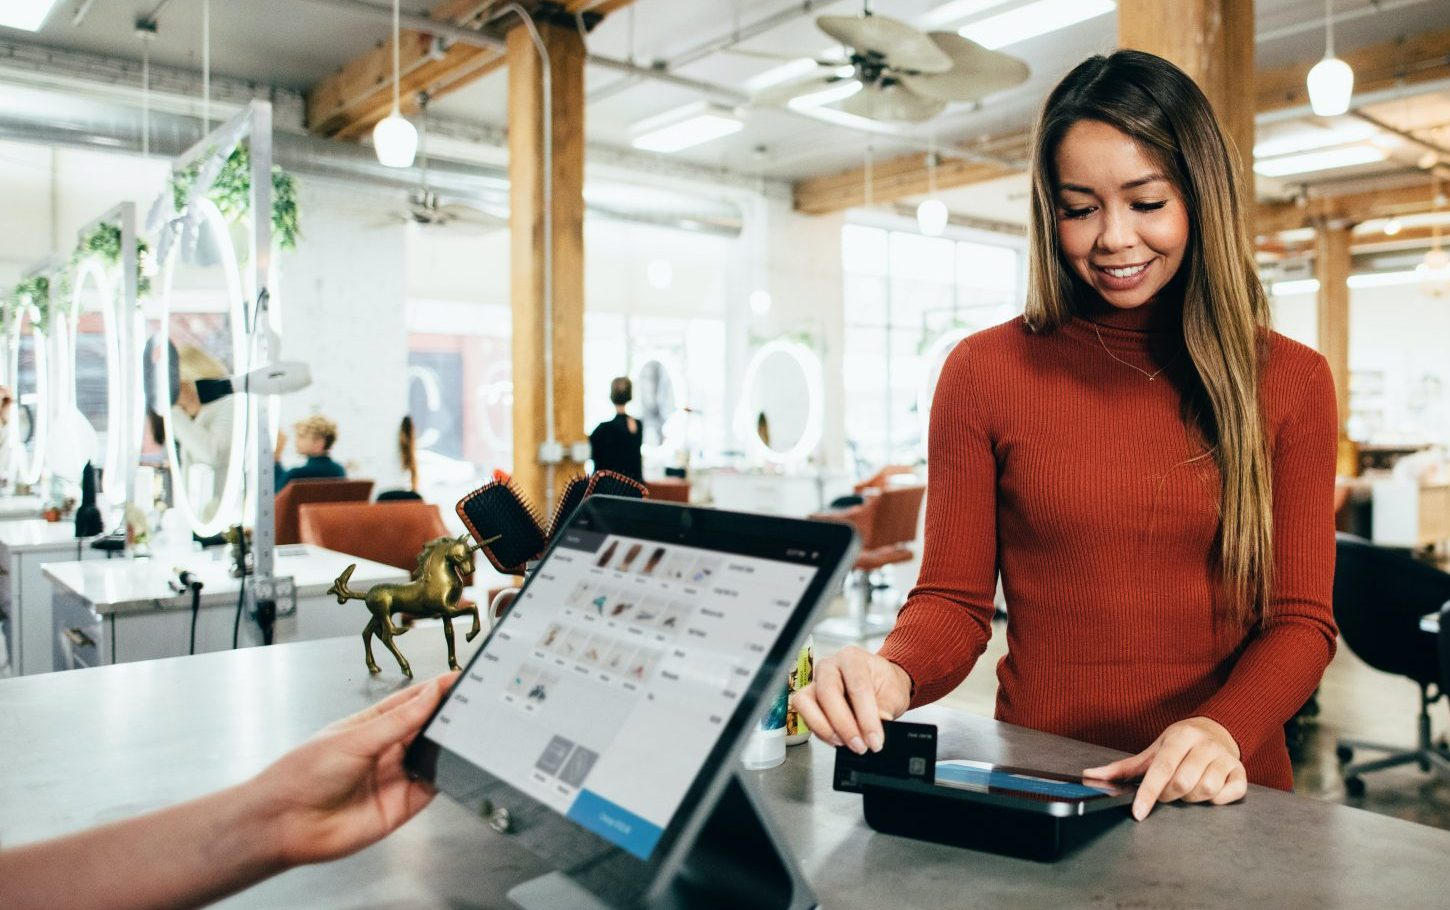 Customer service at the heart of Digital Strategy